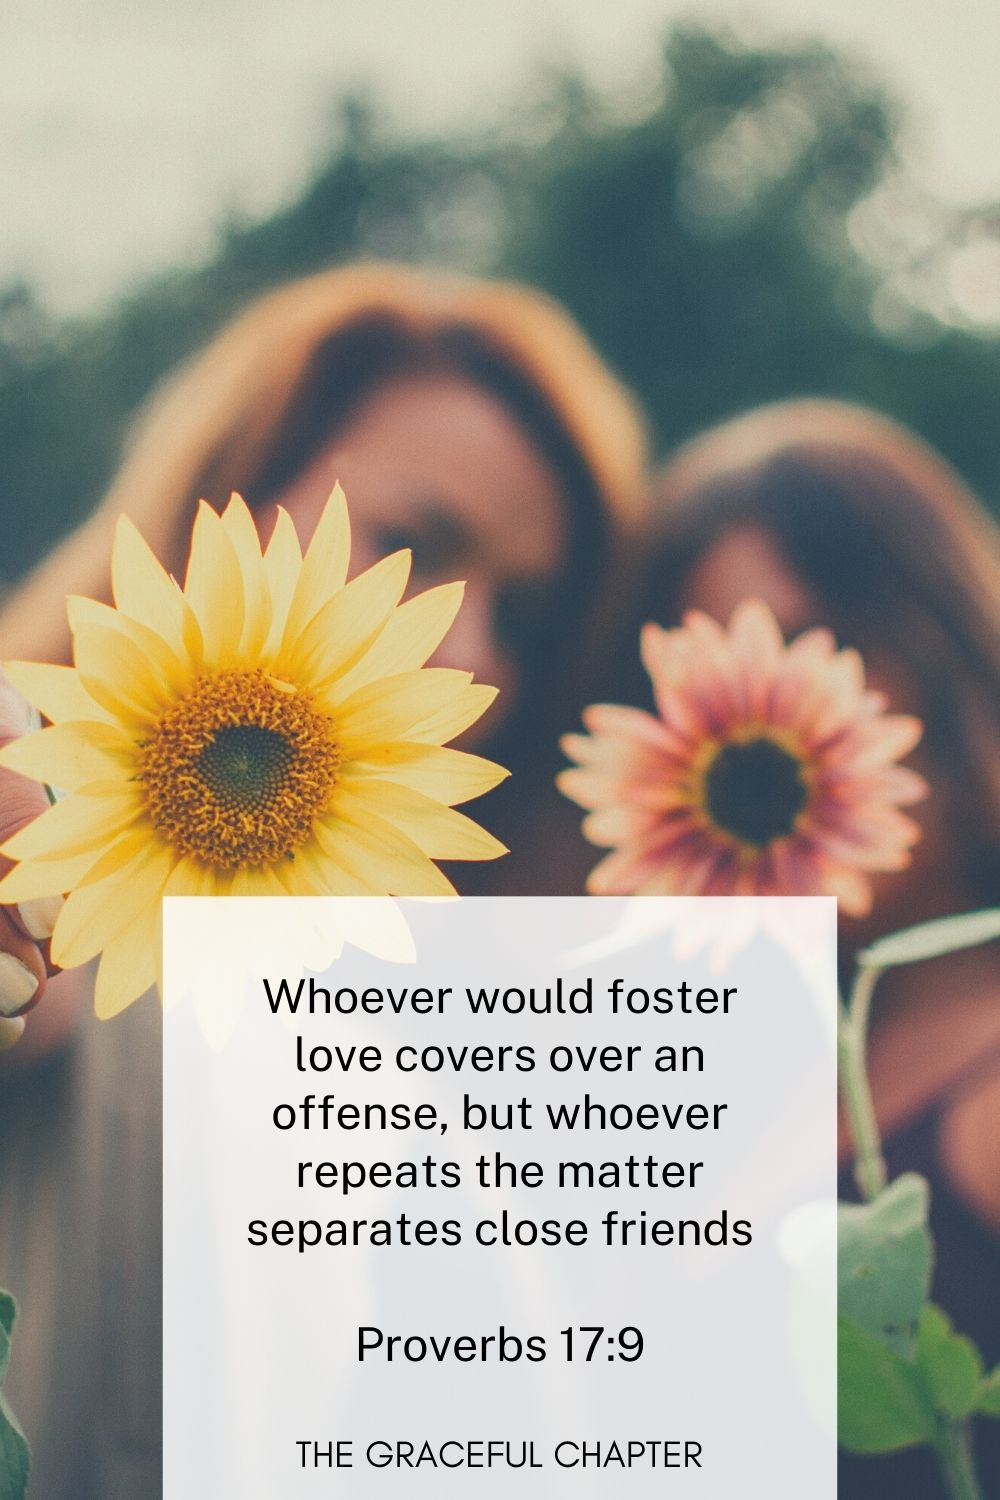 Whoever would foster love covers over an offense, but whoever repeats the matter separates close friends Proverbs 17:9